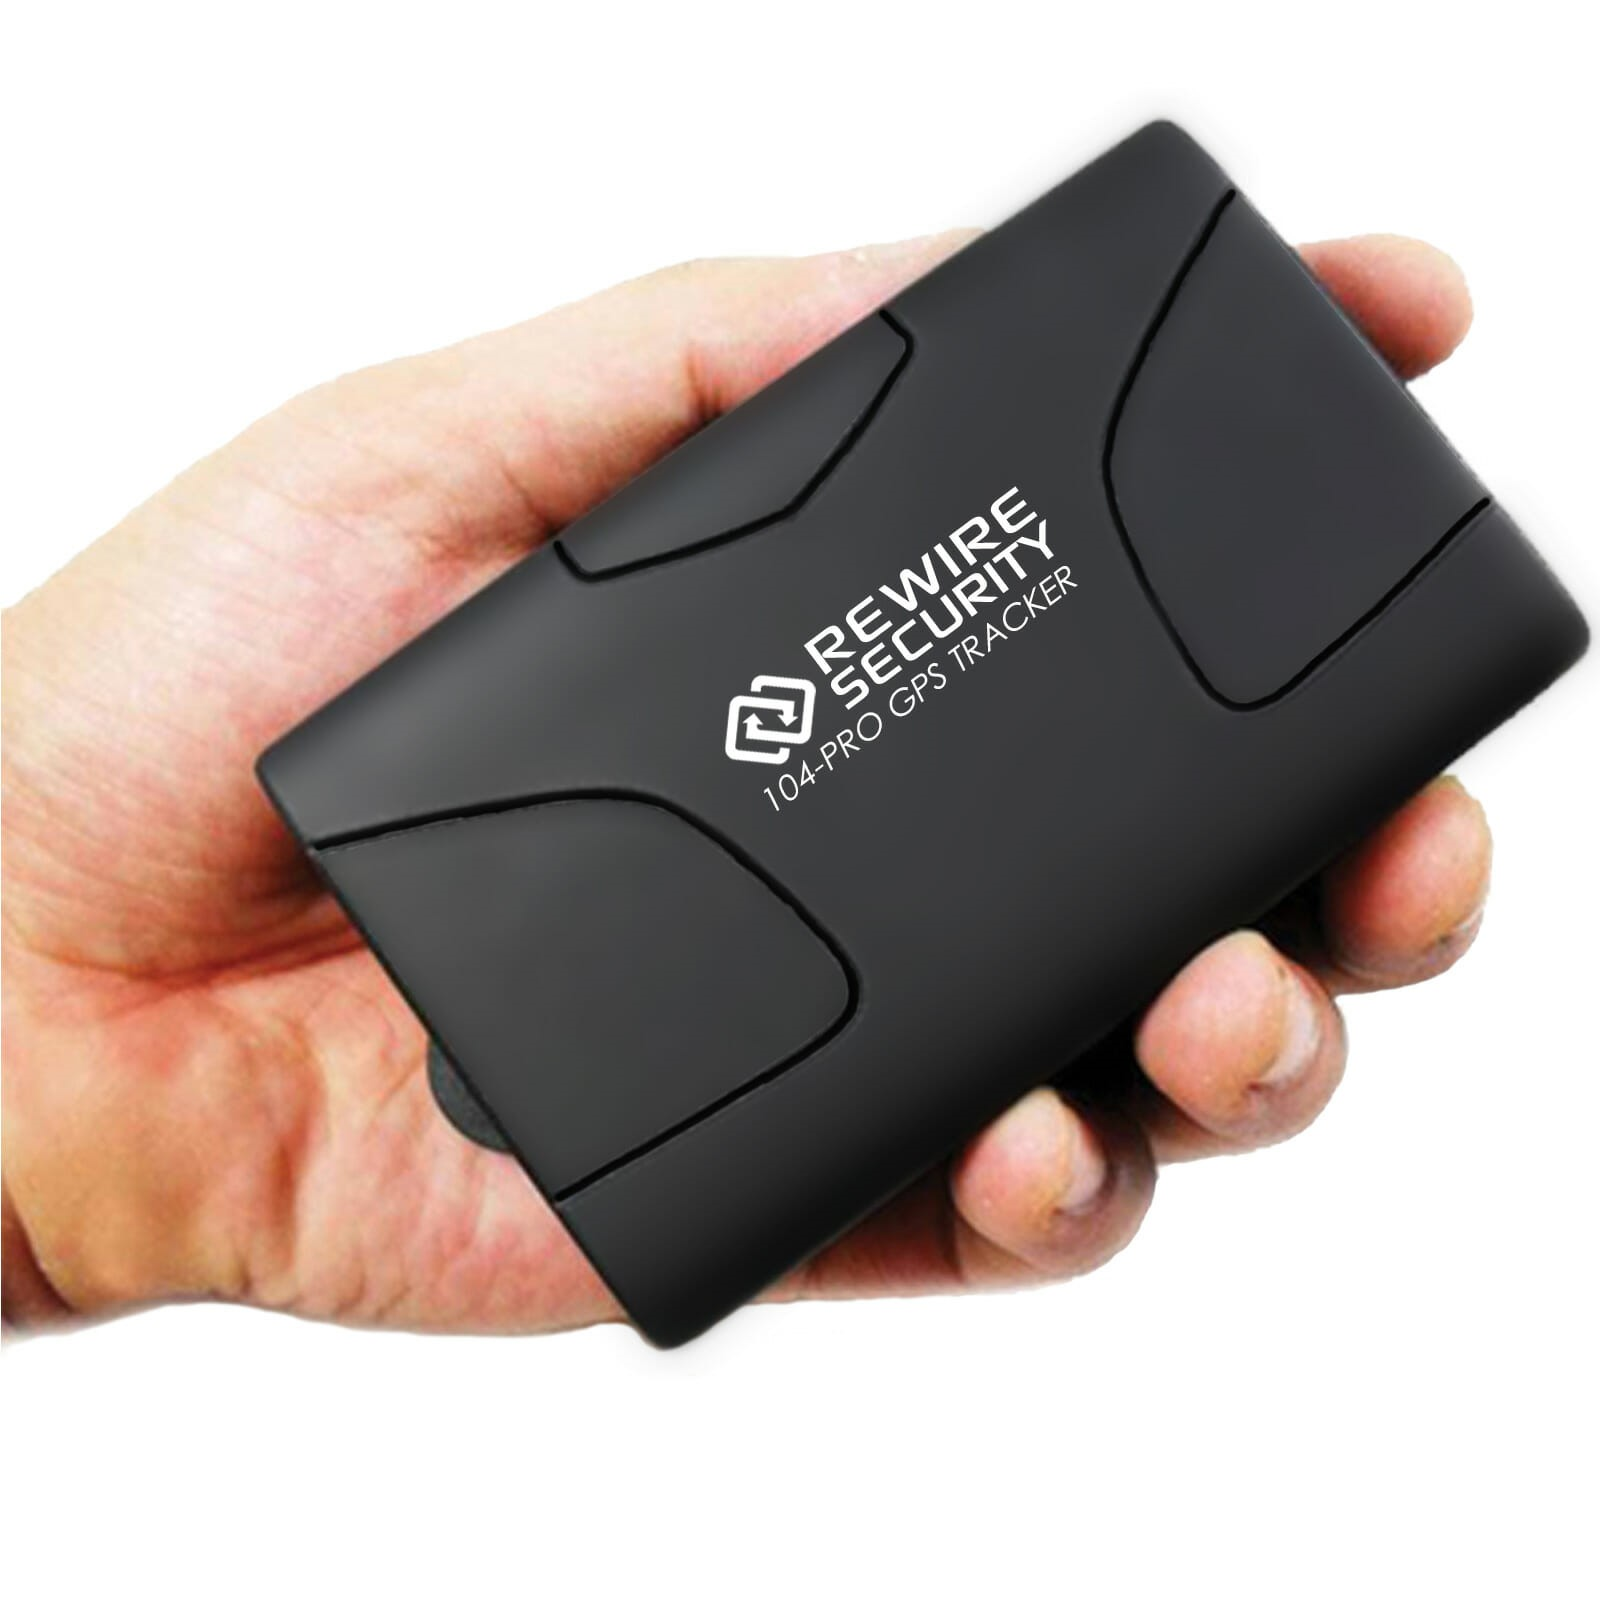 products-104-pro-gps-tracker-tracking-device-rewire-security2